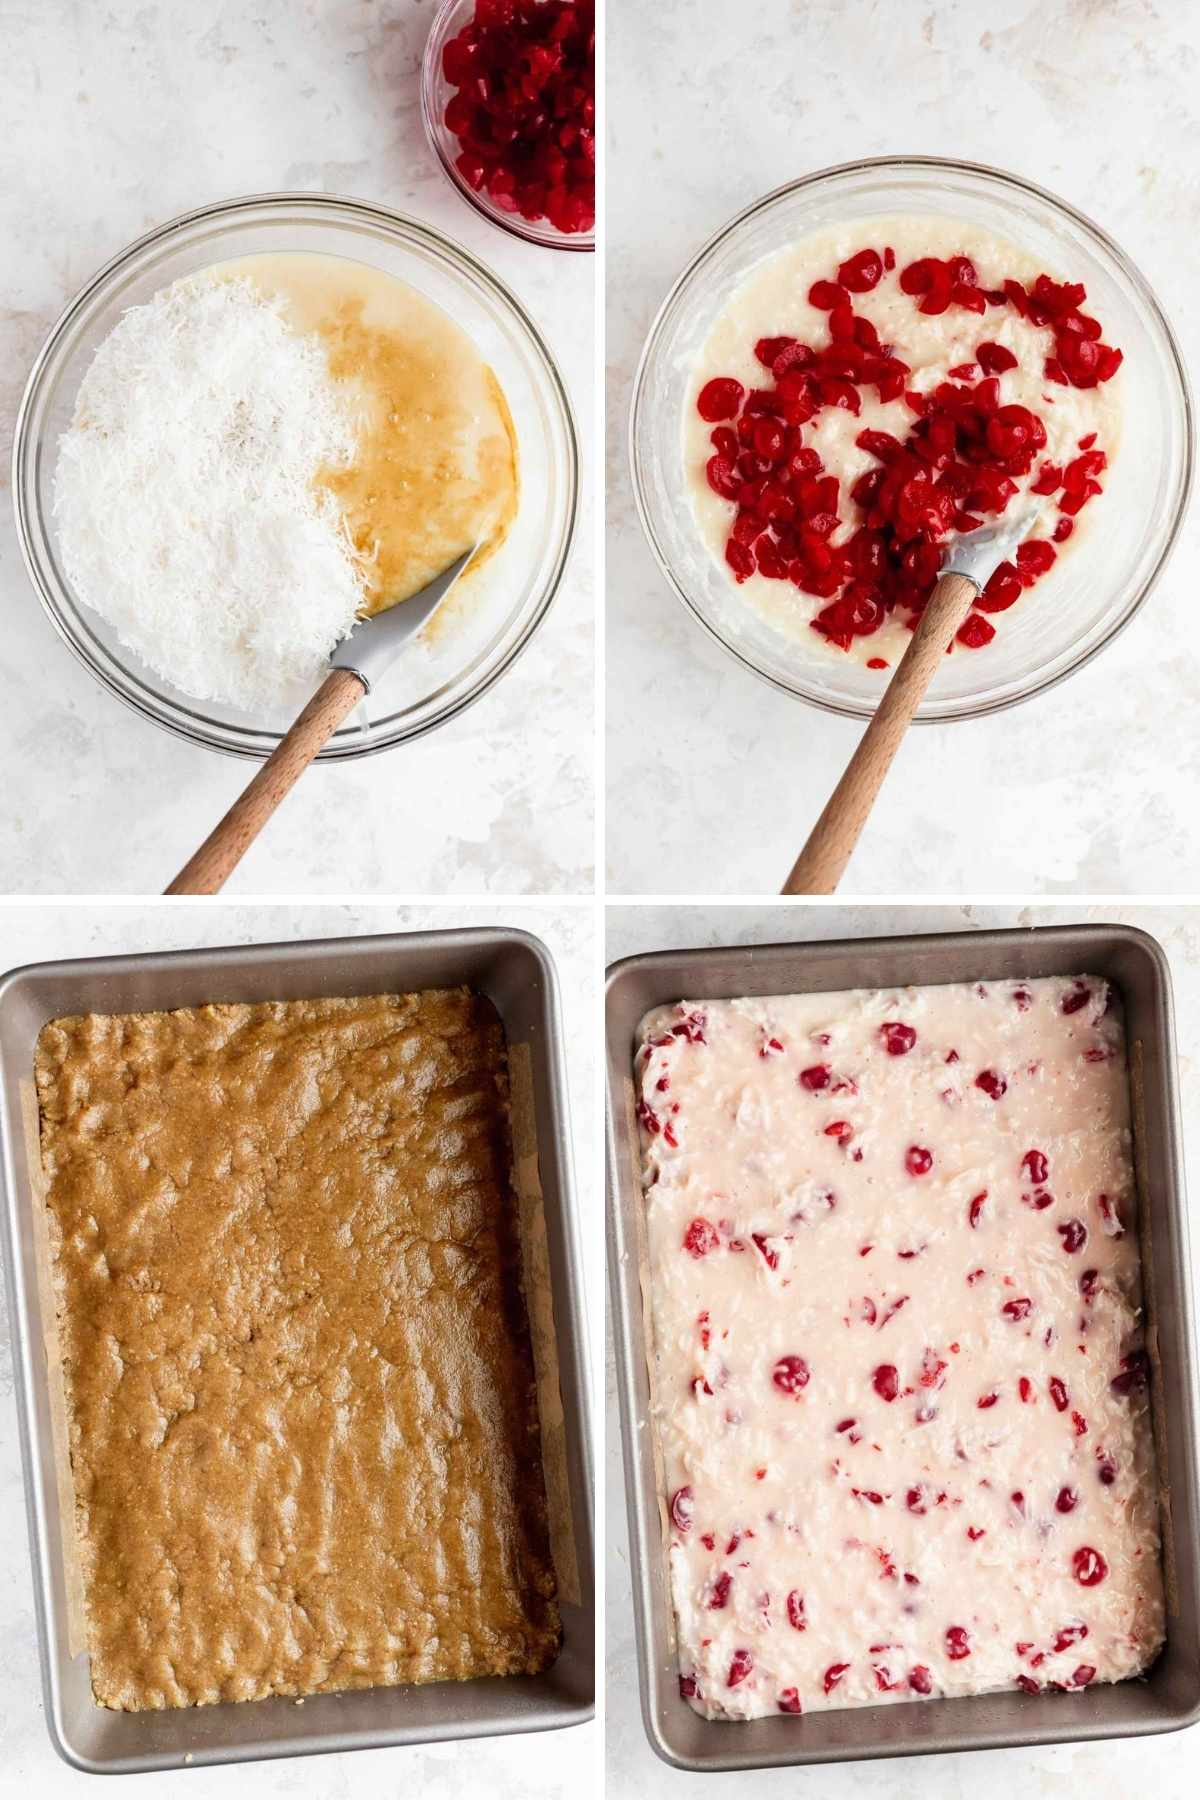 Cherry Coconut Bars prep steps of ingredients in bowls and layers in baking pan